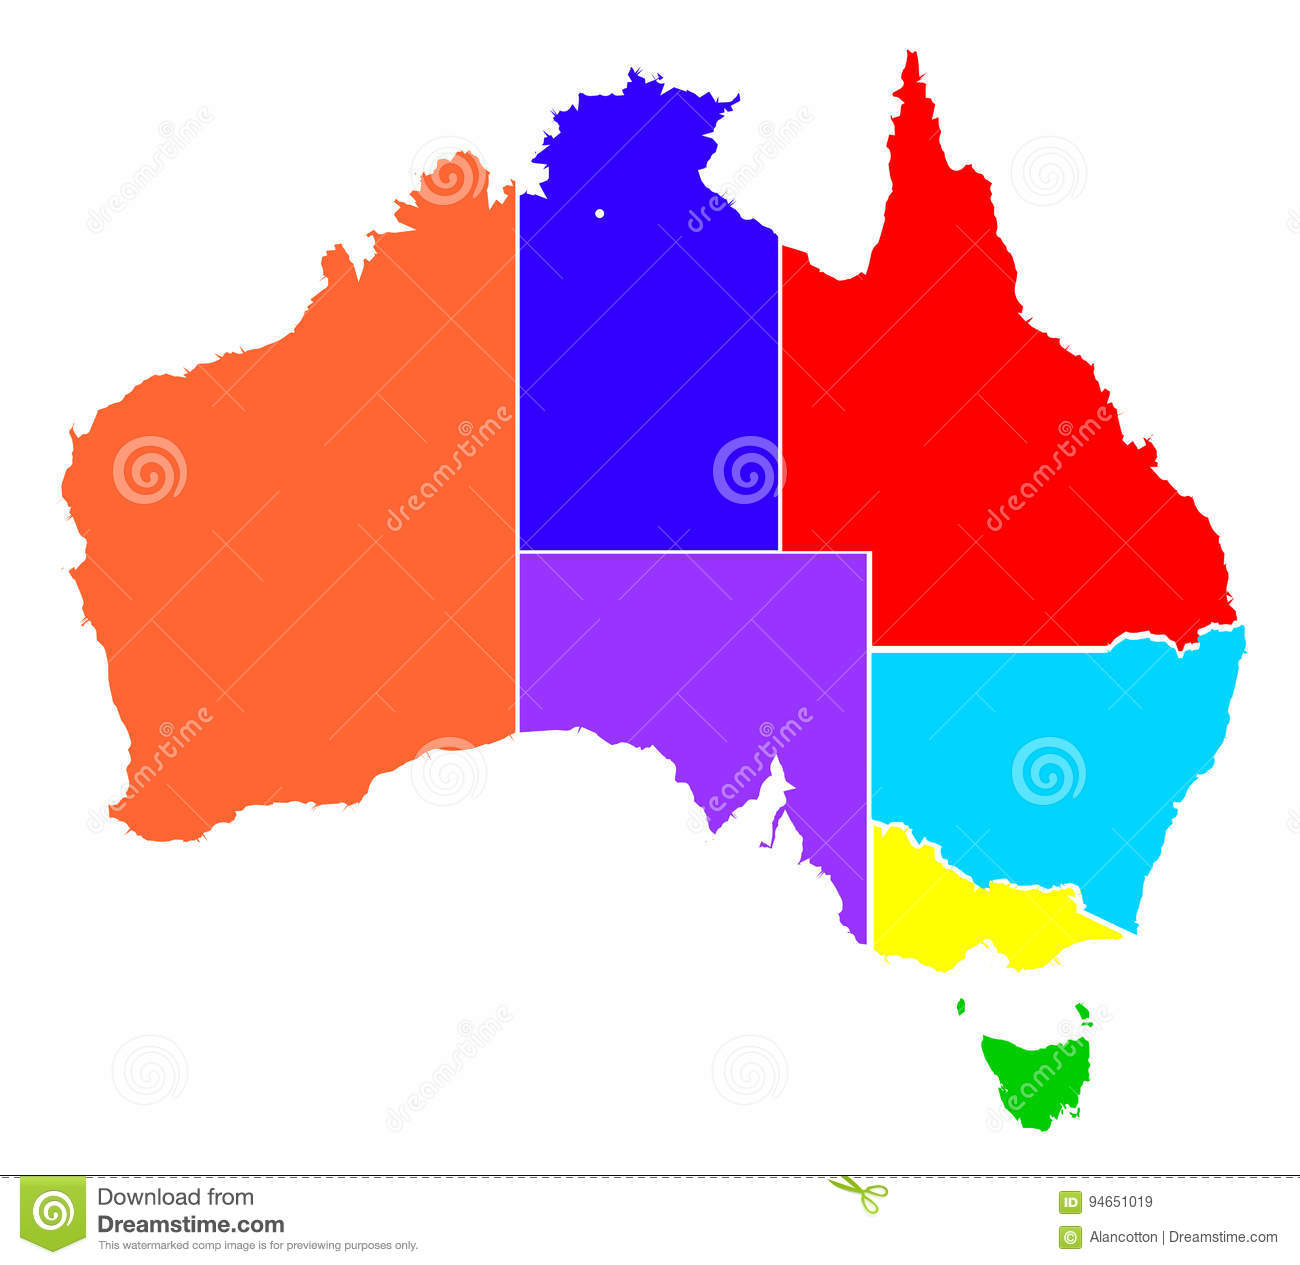 Map Of States Of Australia.Australia States In Colour Silhouette Stock Vector Illustration Of